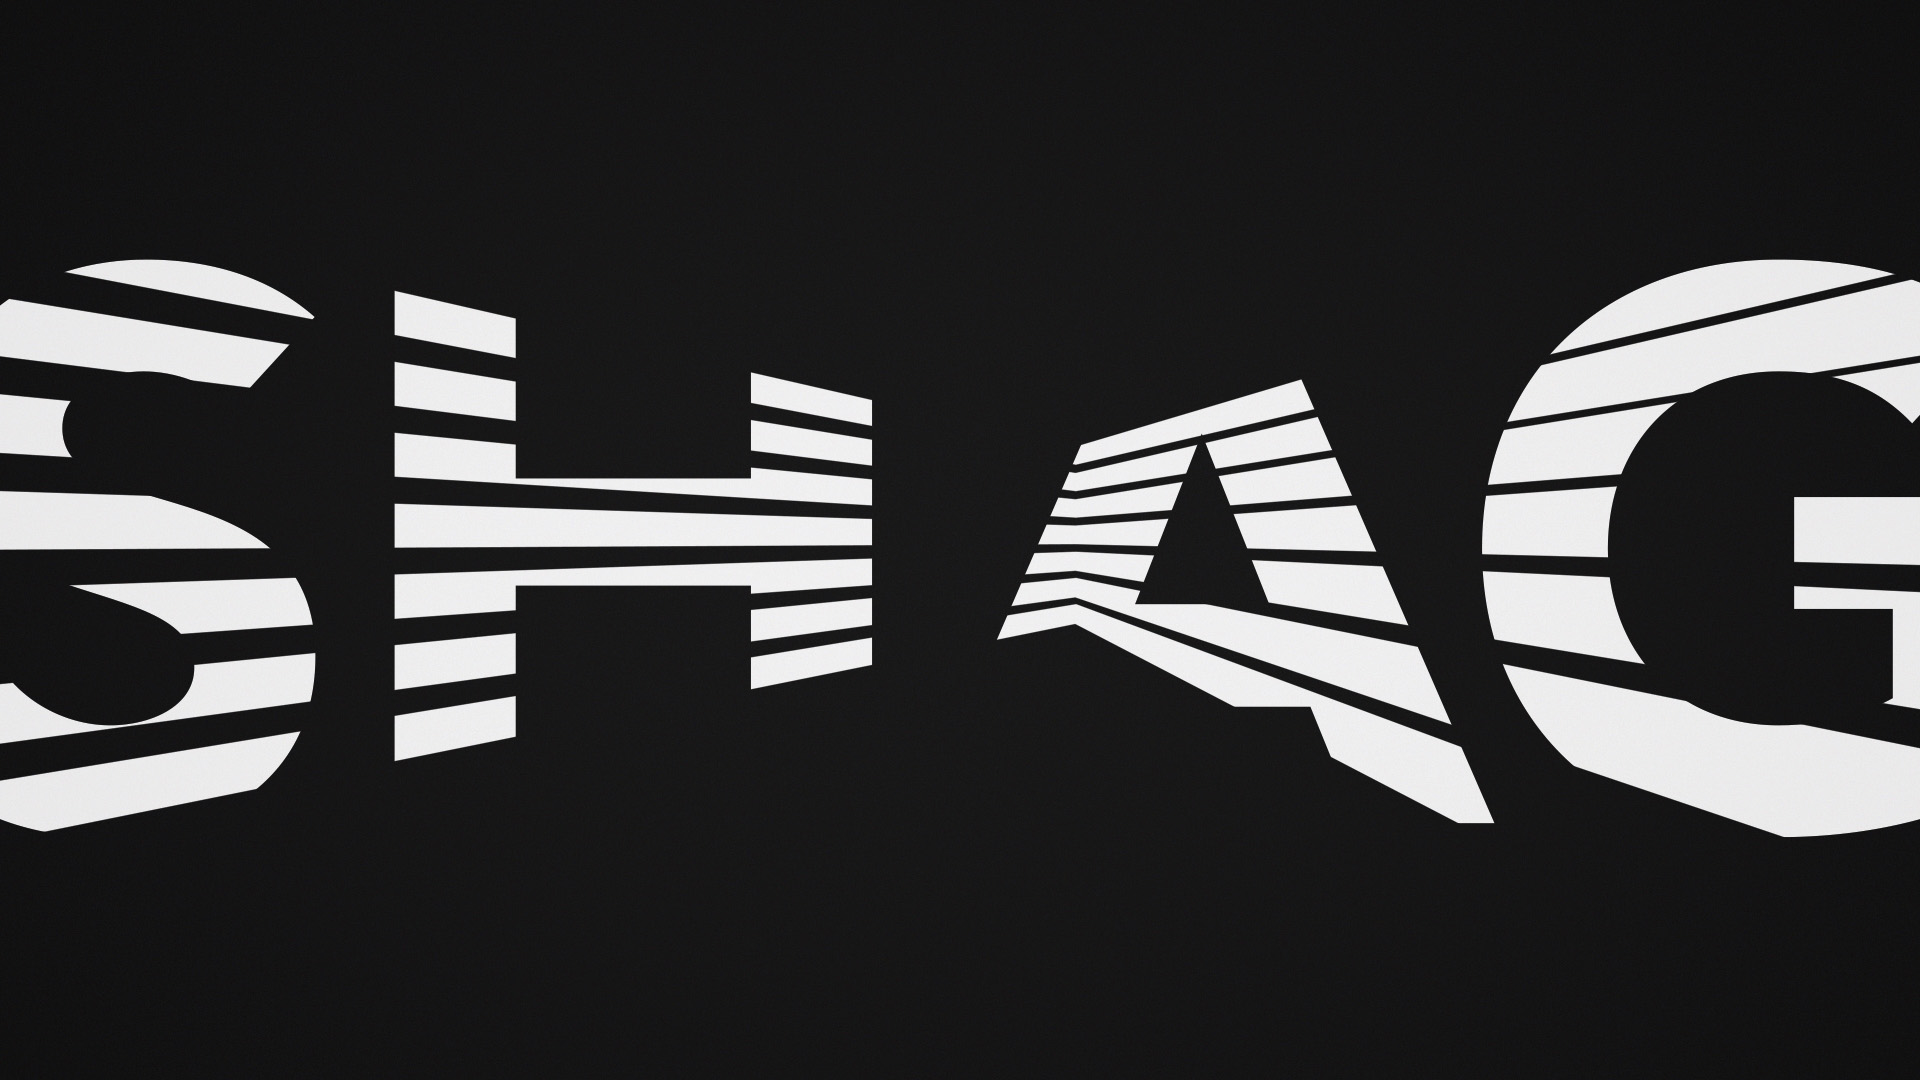 WisdomTree SHAG design style frame from the video featuring typography